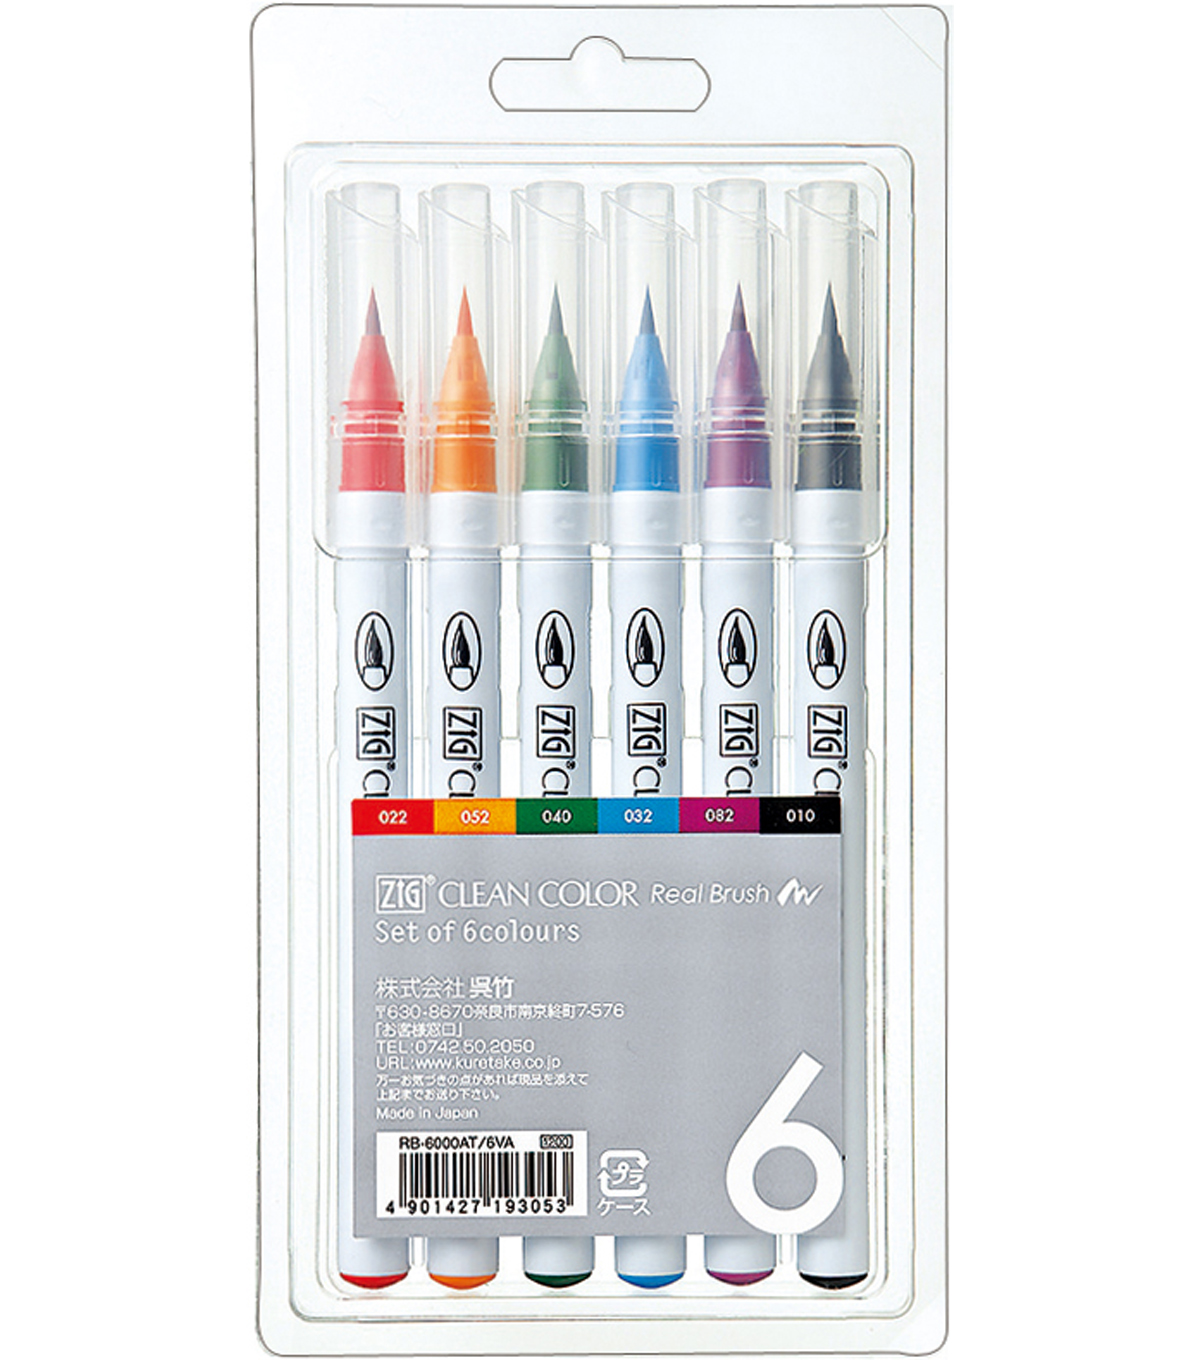 Zig Clean Color Real Brush Markers-6PK